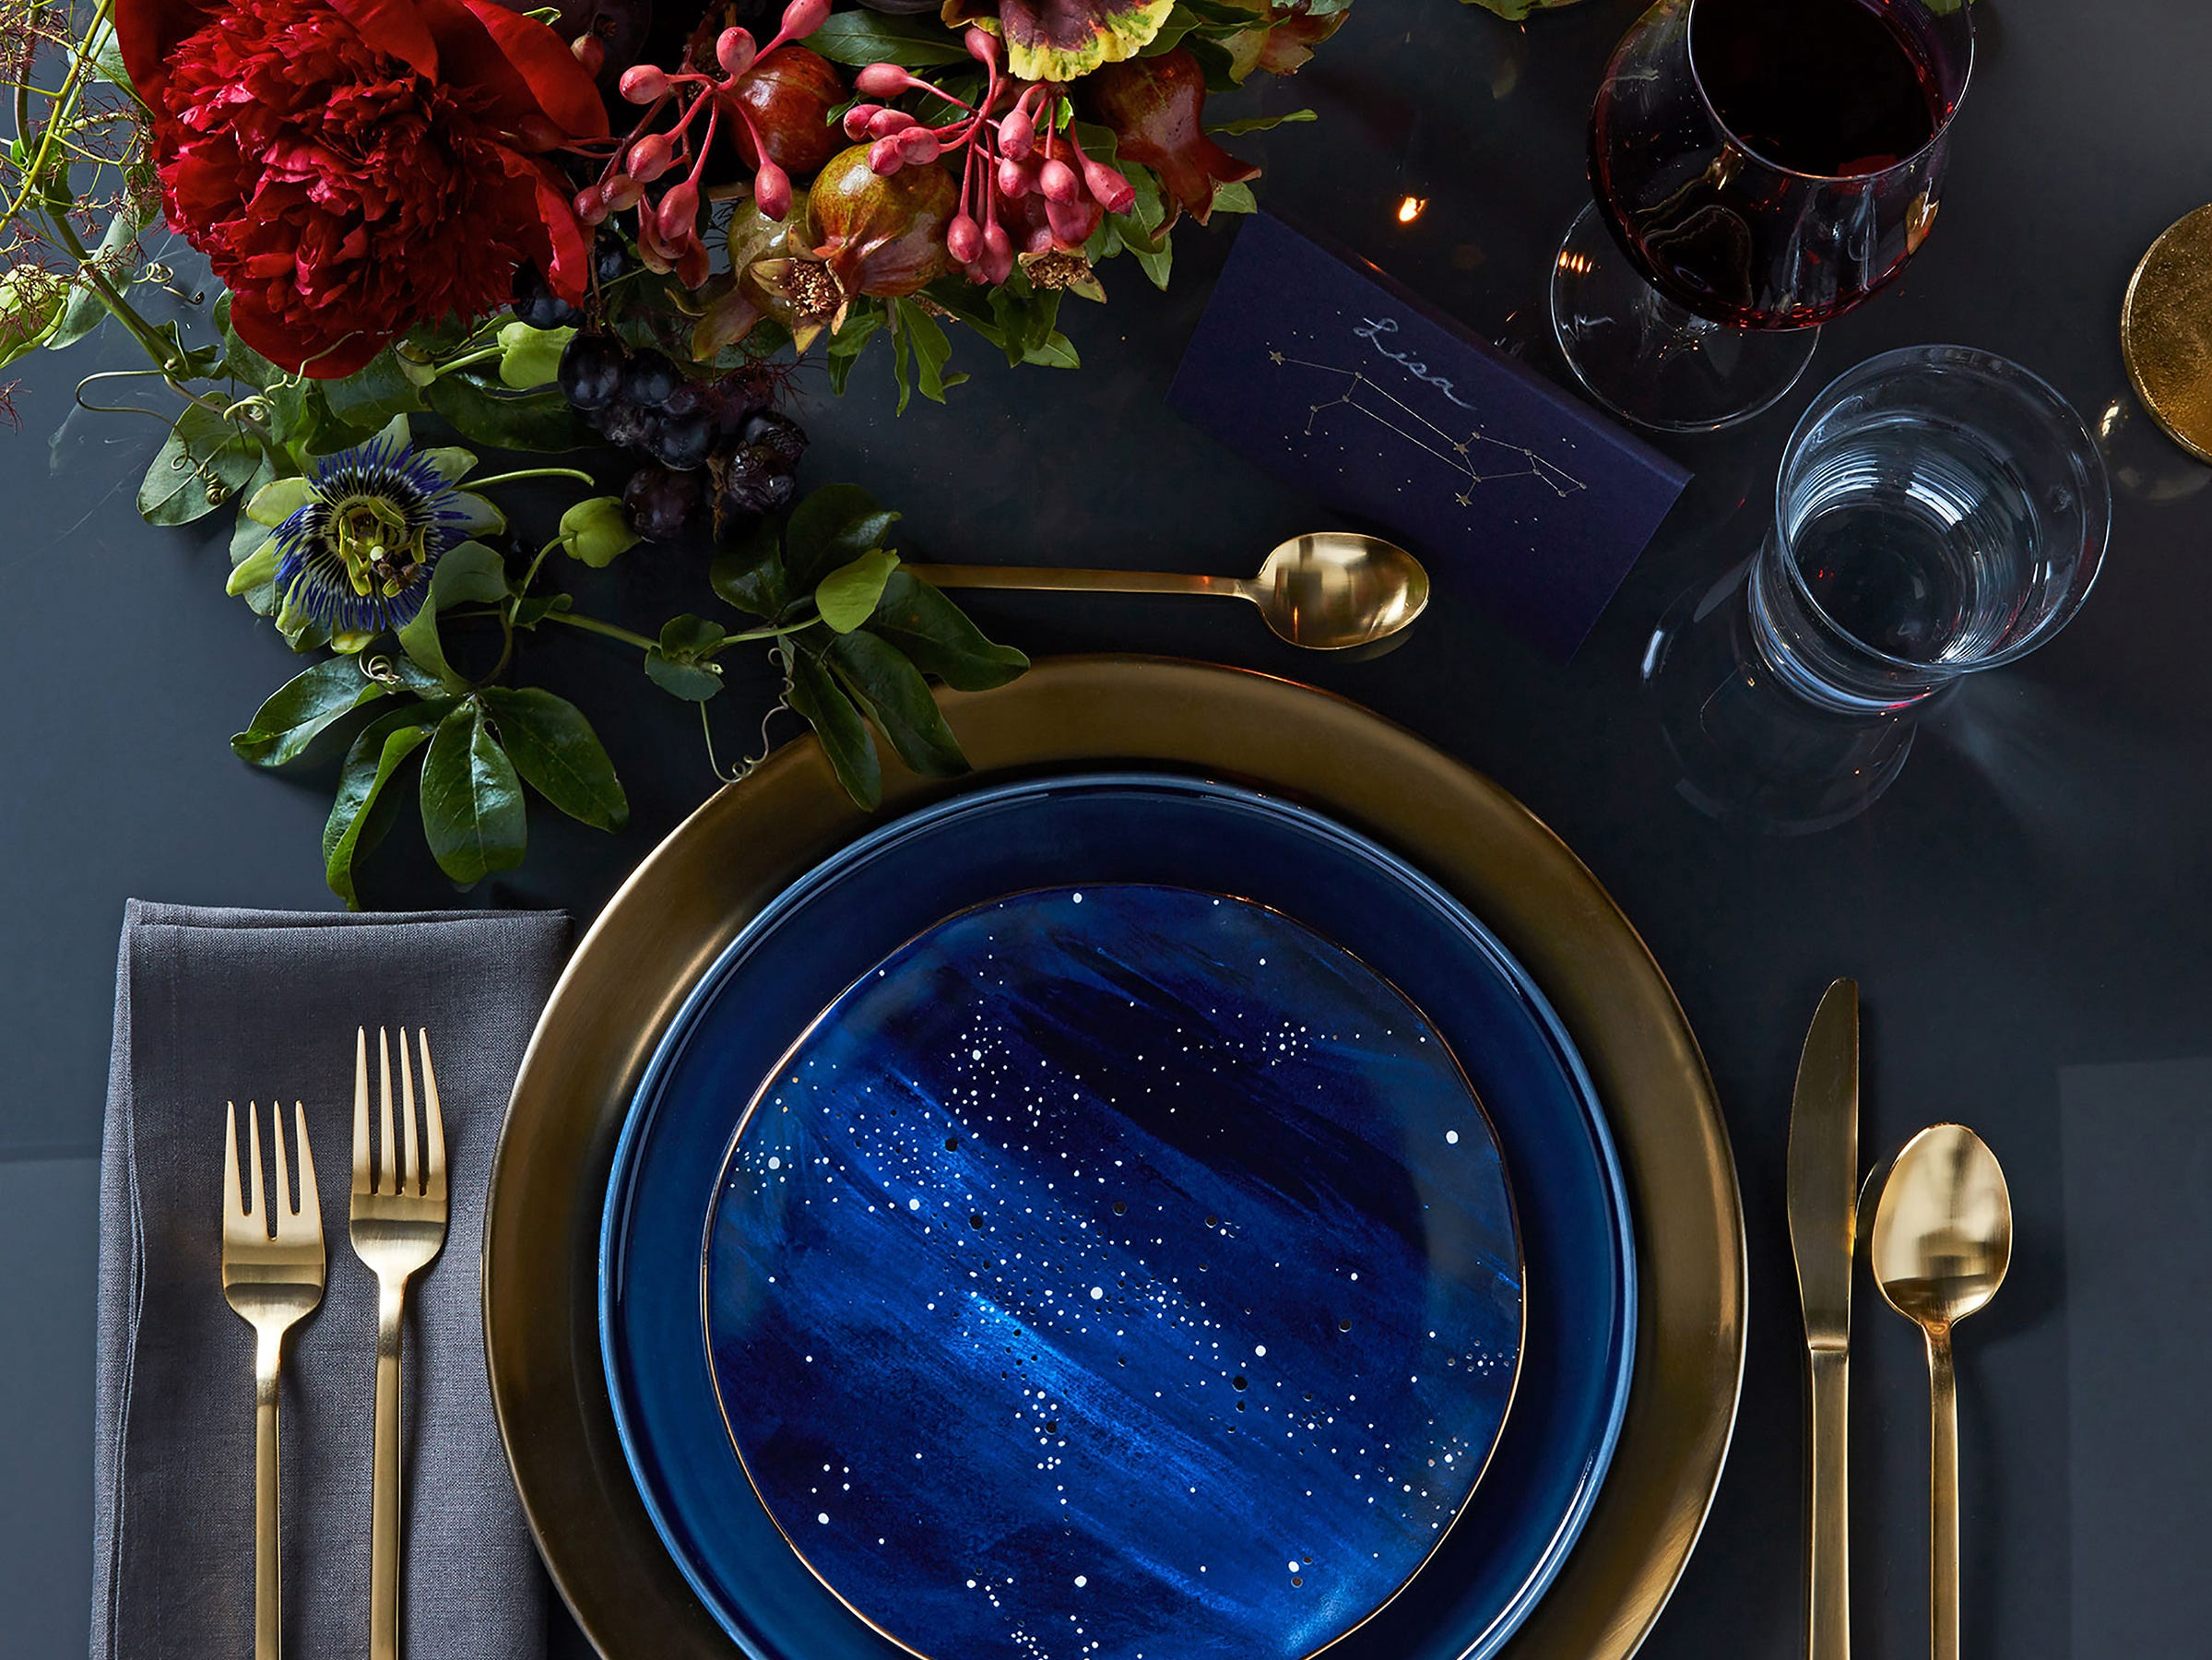 The sky's the limit with possibilities for the Constellation salad plate from West Elm. Here, the hand-glazed stoneware is shown in a moody, deep blue ground with gold celestial sprays. There's also gold flatware, with strategic touches of gold and yellow in the flowers.